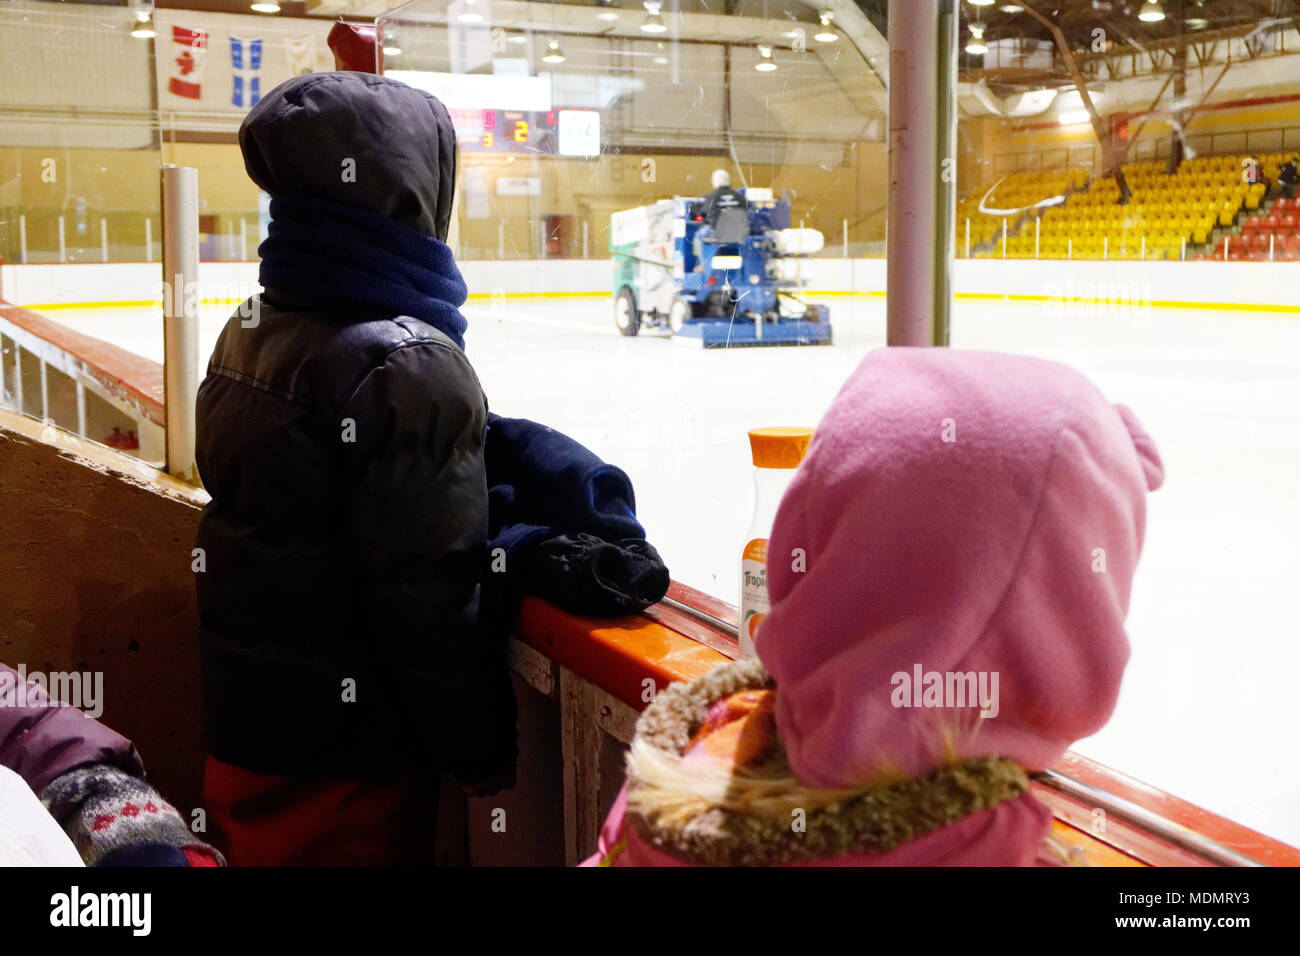 Children watching a zamboni preparing the ice in a small hockey arena - Stock Image